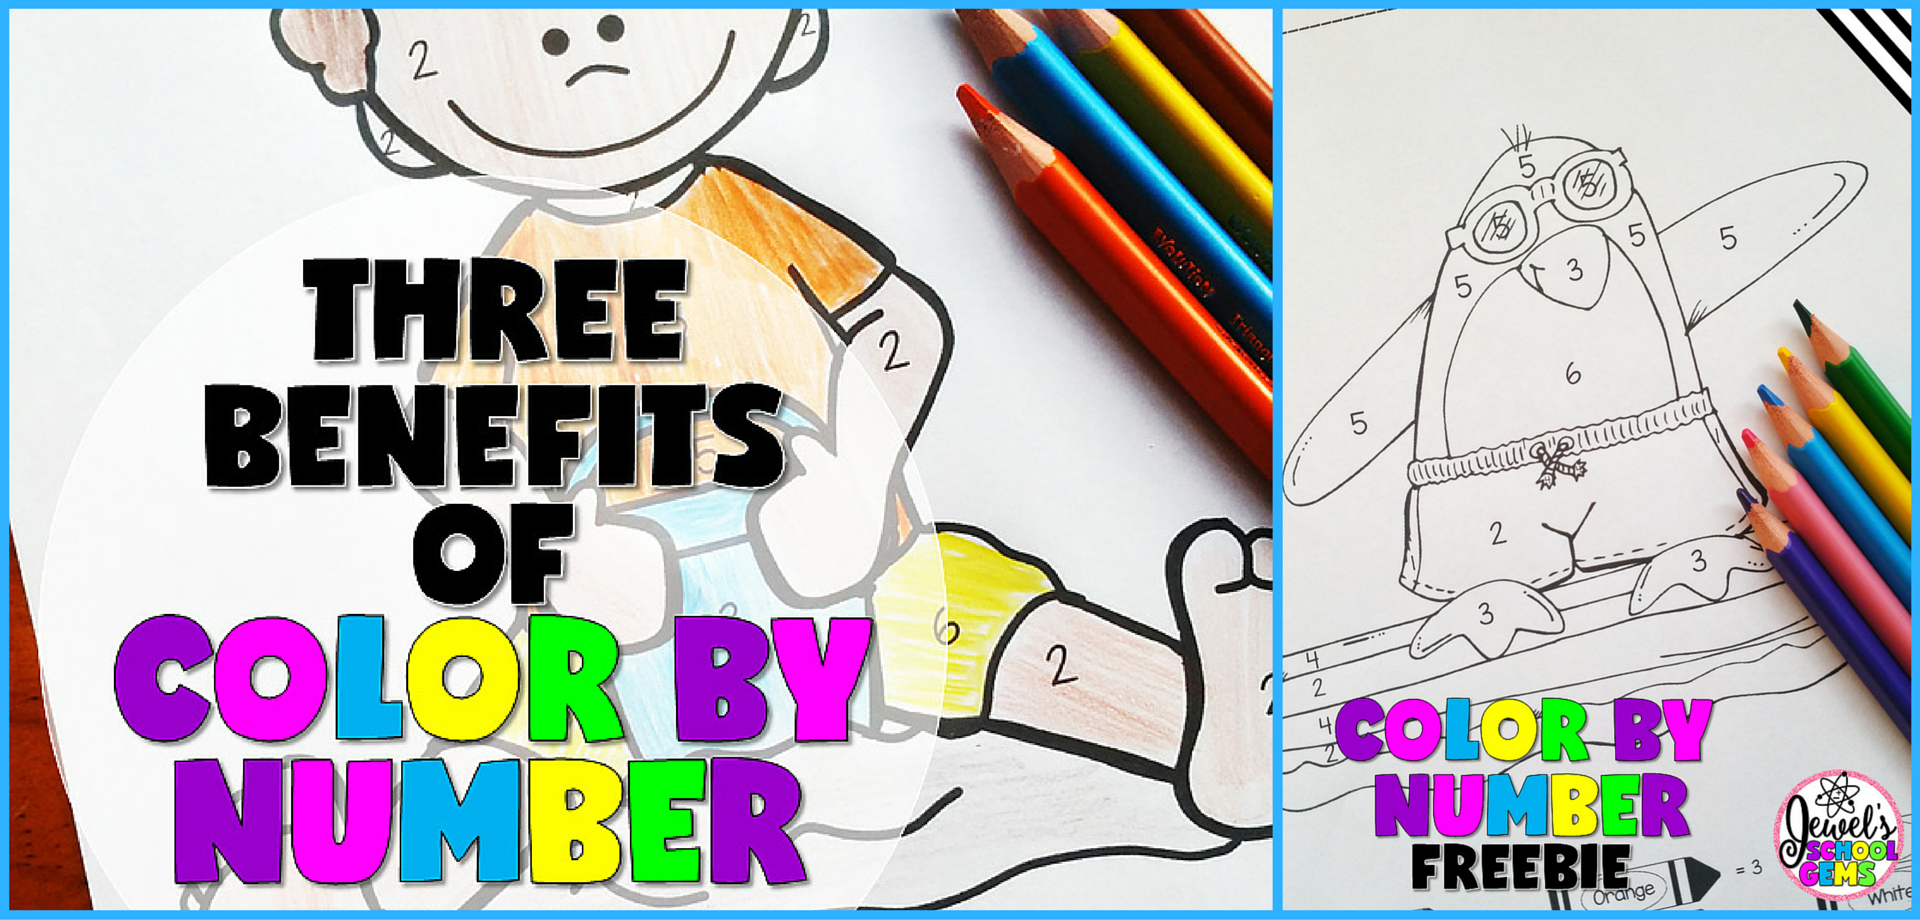 3 Benefits Of Color By Number Free Coloring Sheets The Tpt Blog